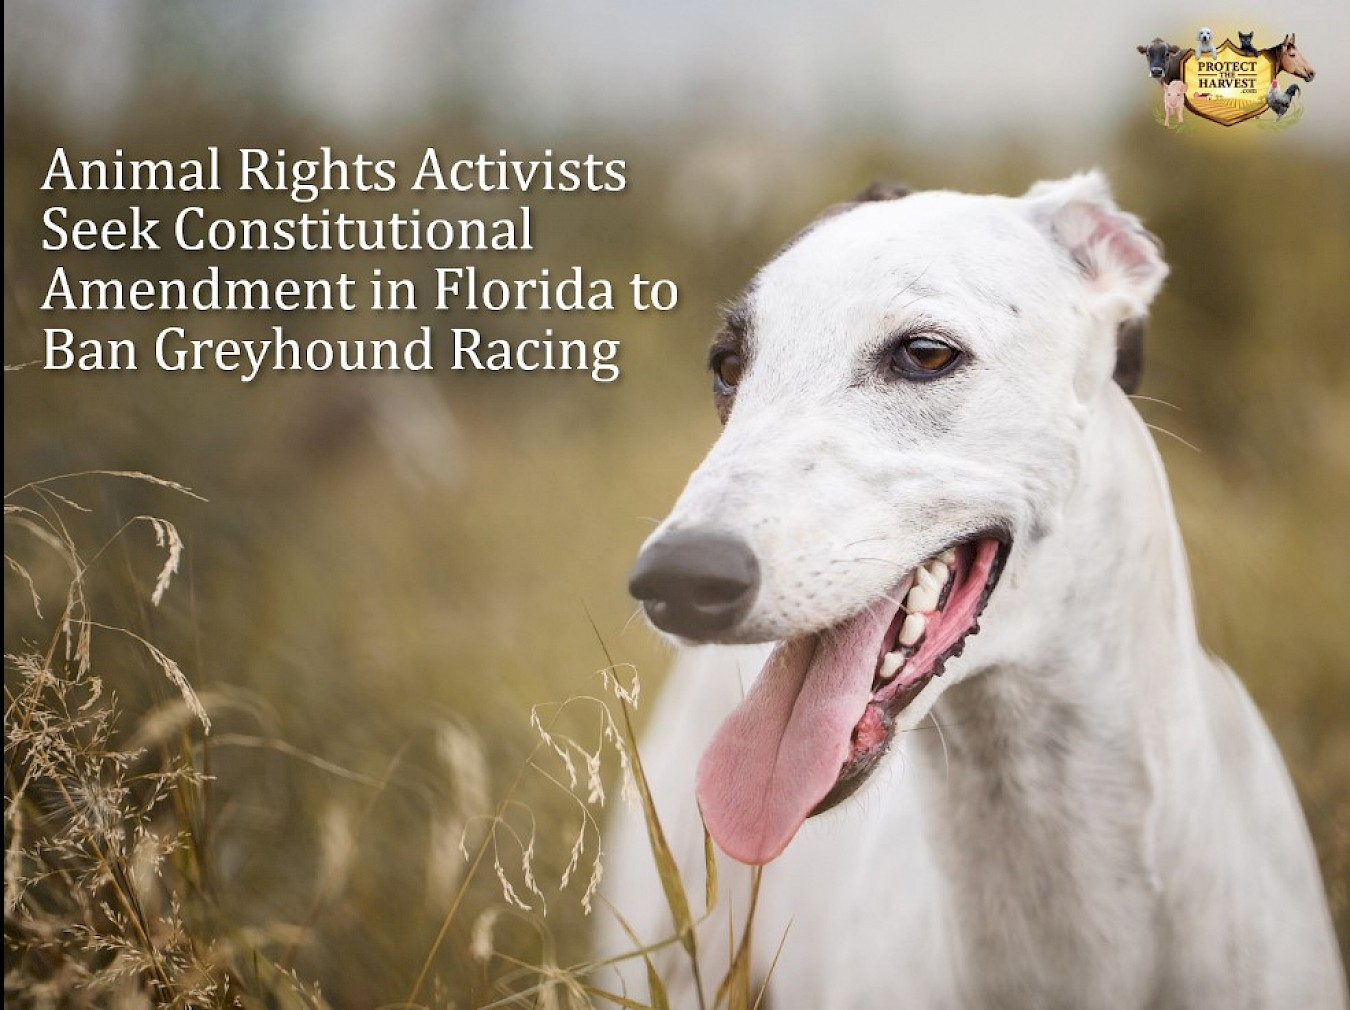 Animal Rights Activists Seek Constitutional Amendment in Florida to Ban Greyhound Racing